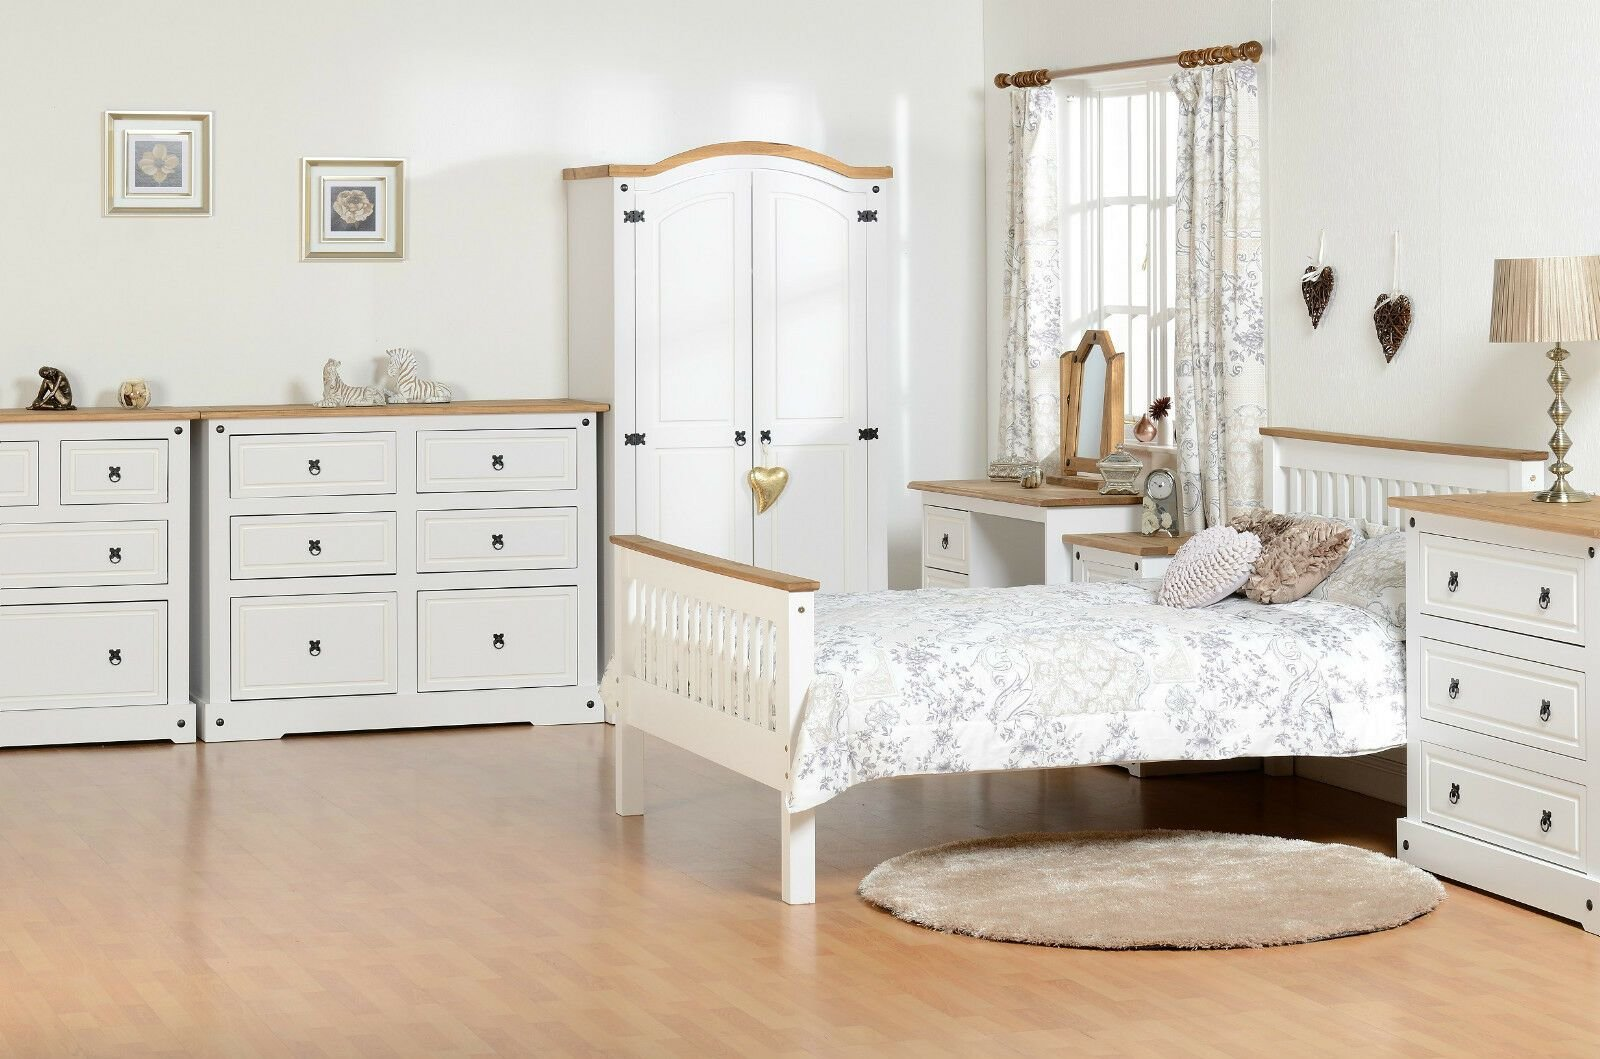 Best Corona White Farm House Bedroom Furniture Wardrobe Chest Dressing Table Beds Ebay With Pictures